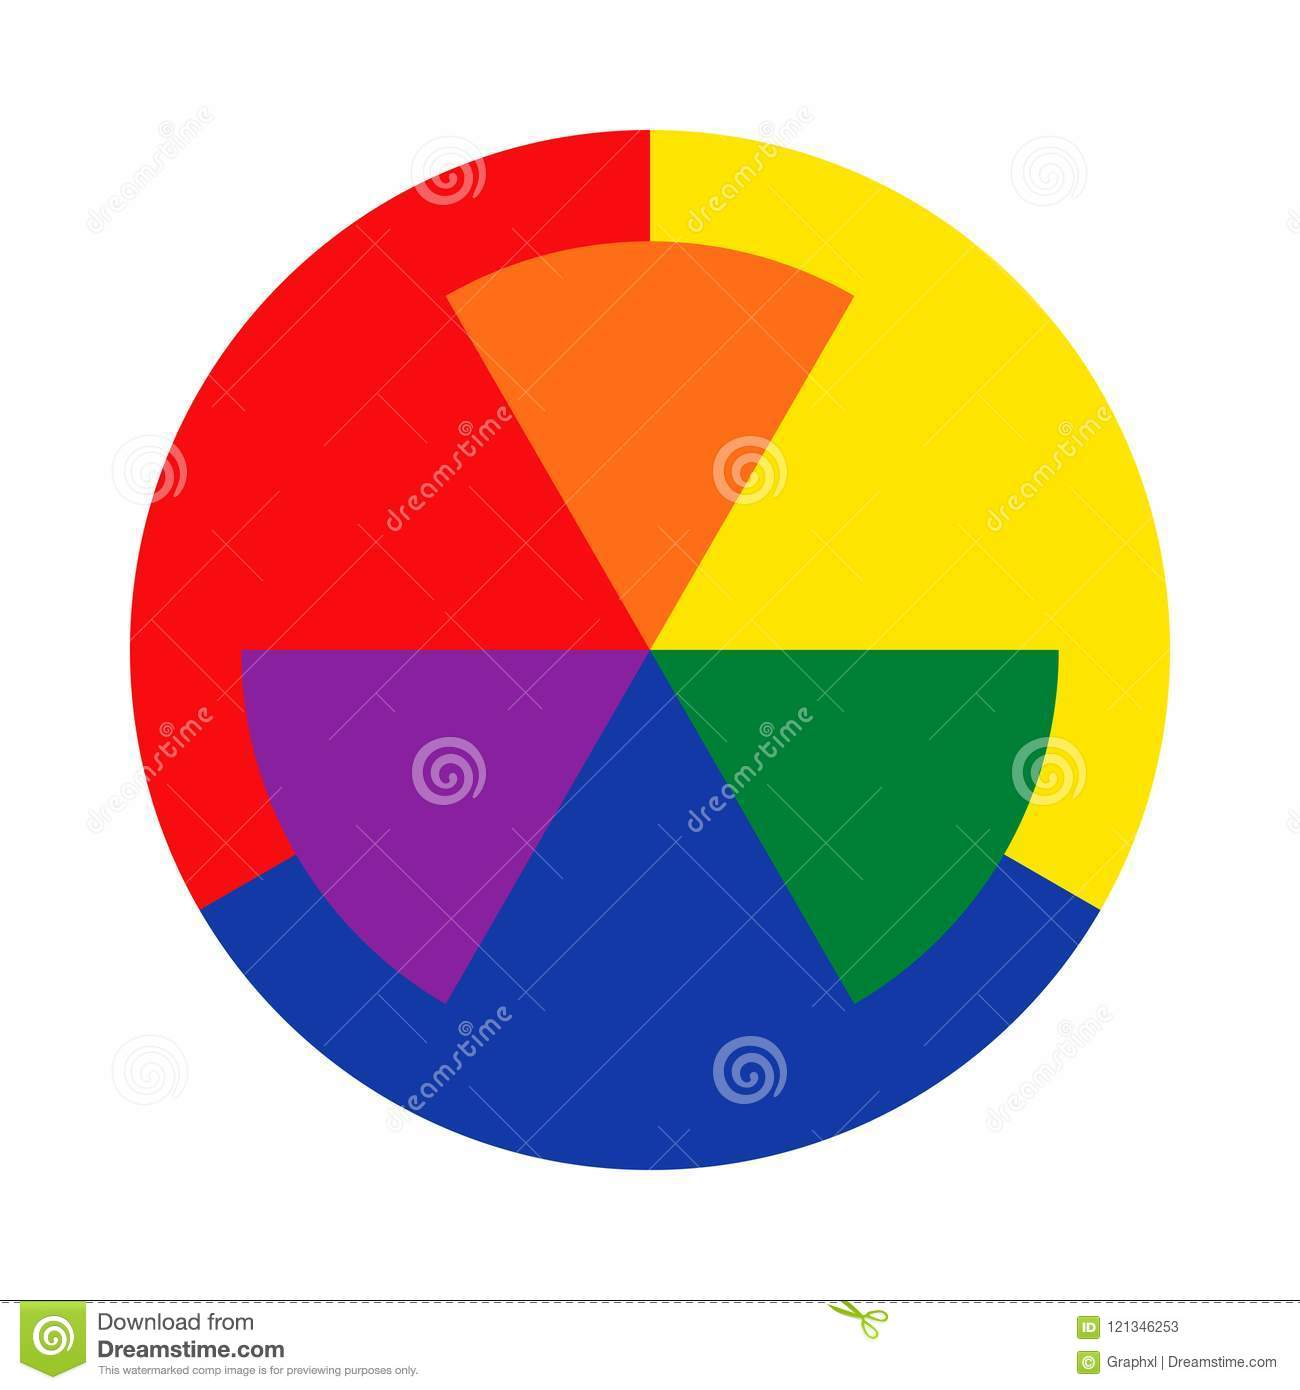 Ryb Color Wheel Stock Vector Illustration Of Color 121346253